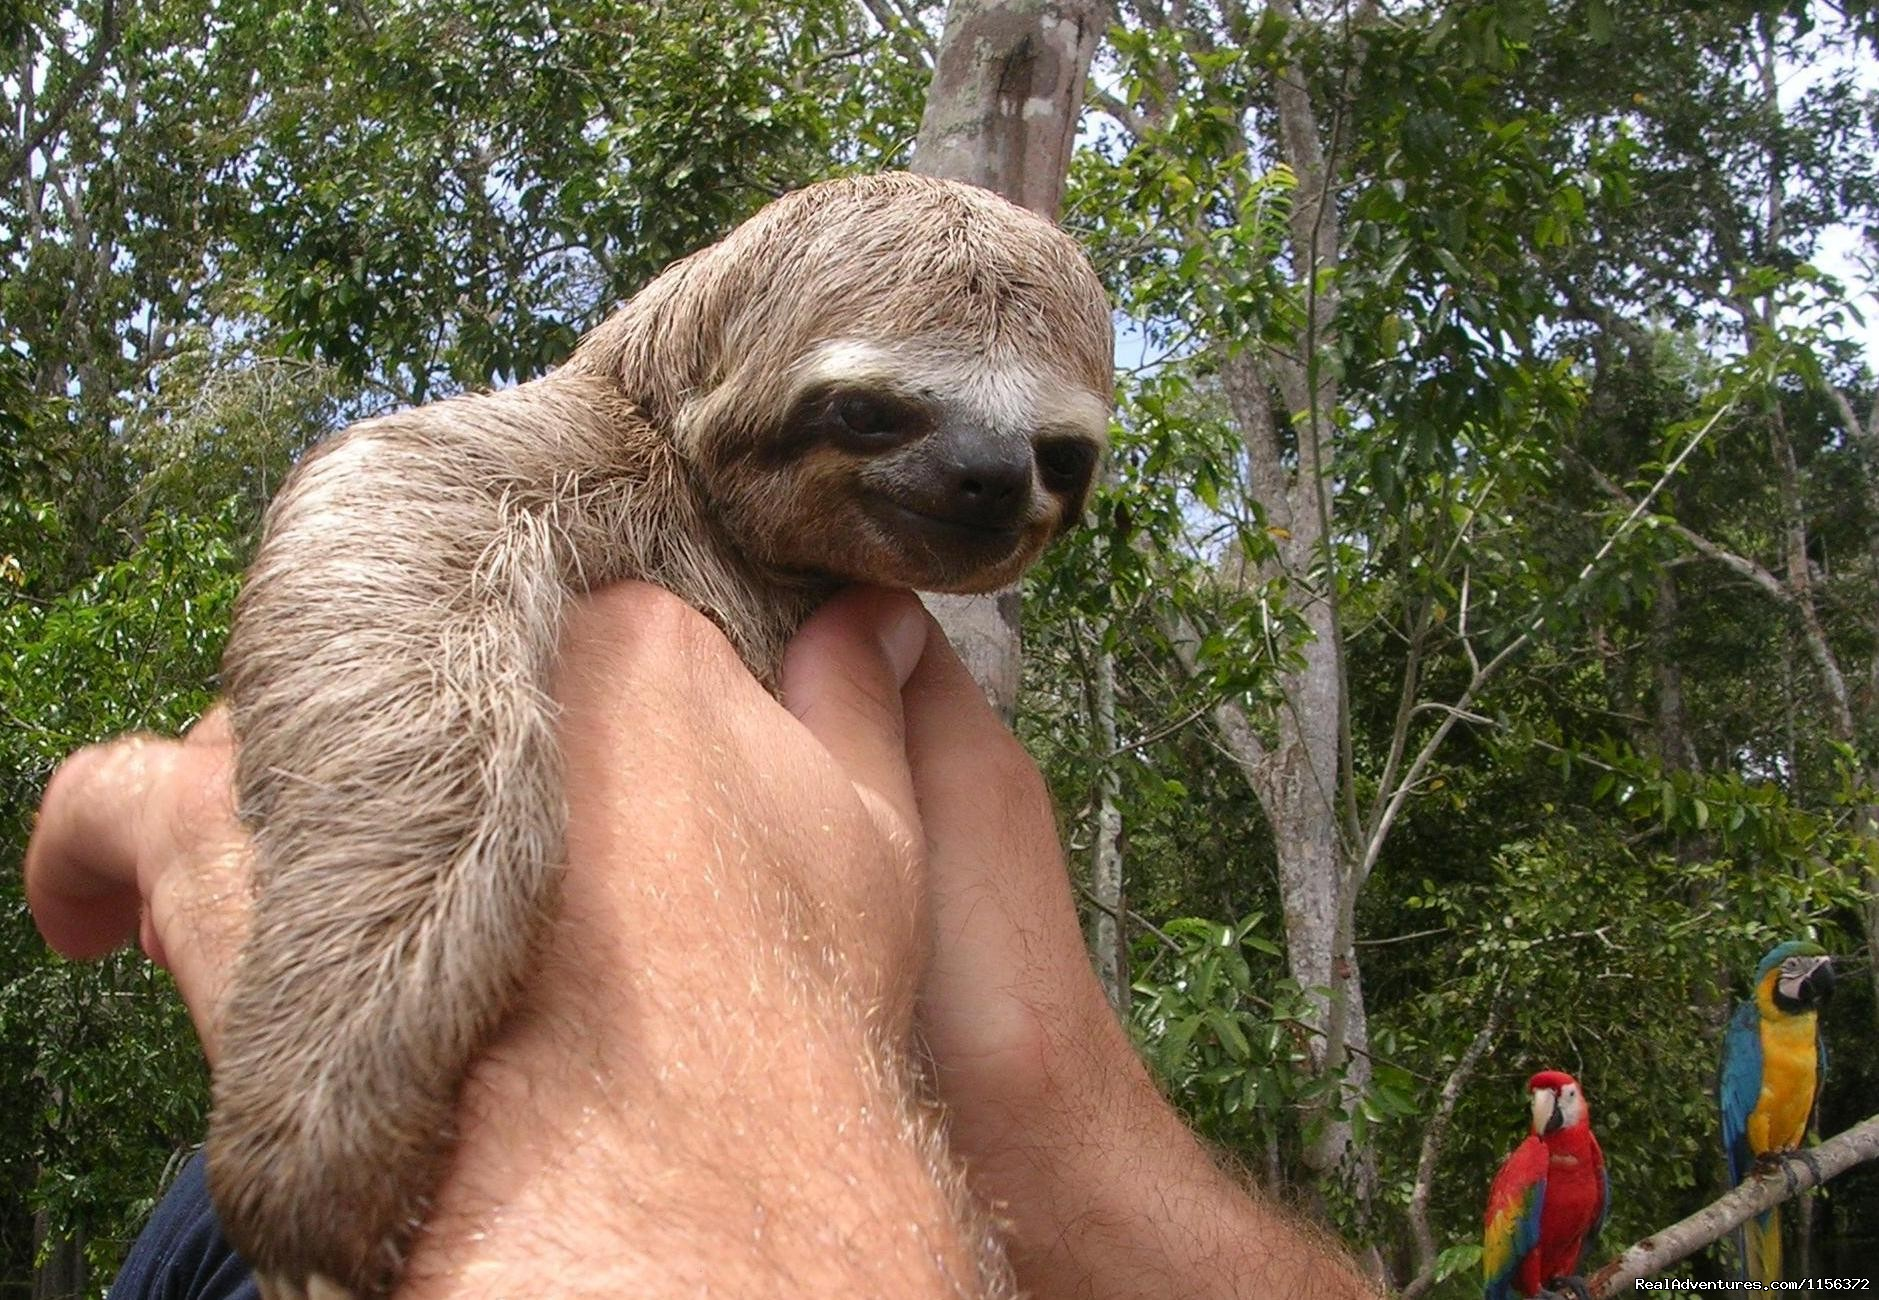 the cute sloth. | Image #8/11 | Brazil Manaus Amazon Jungle Tours